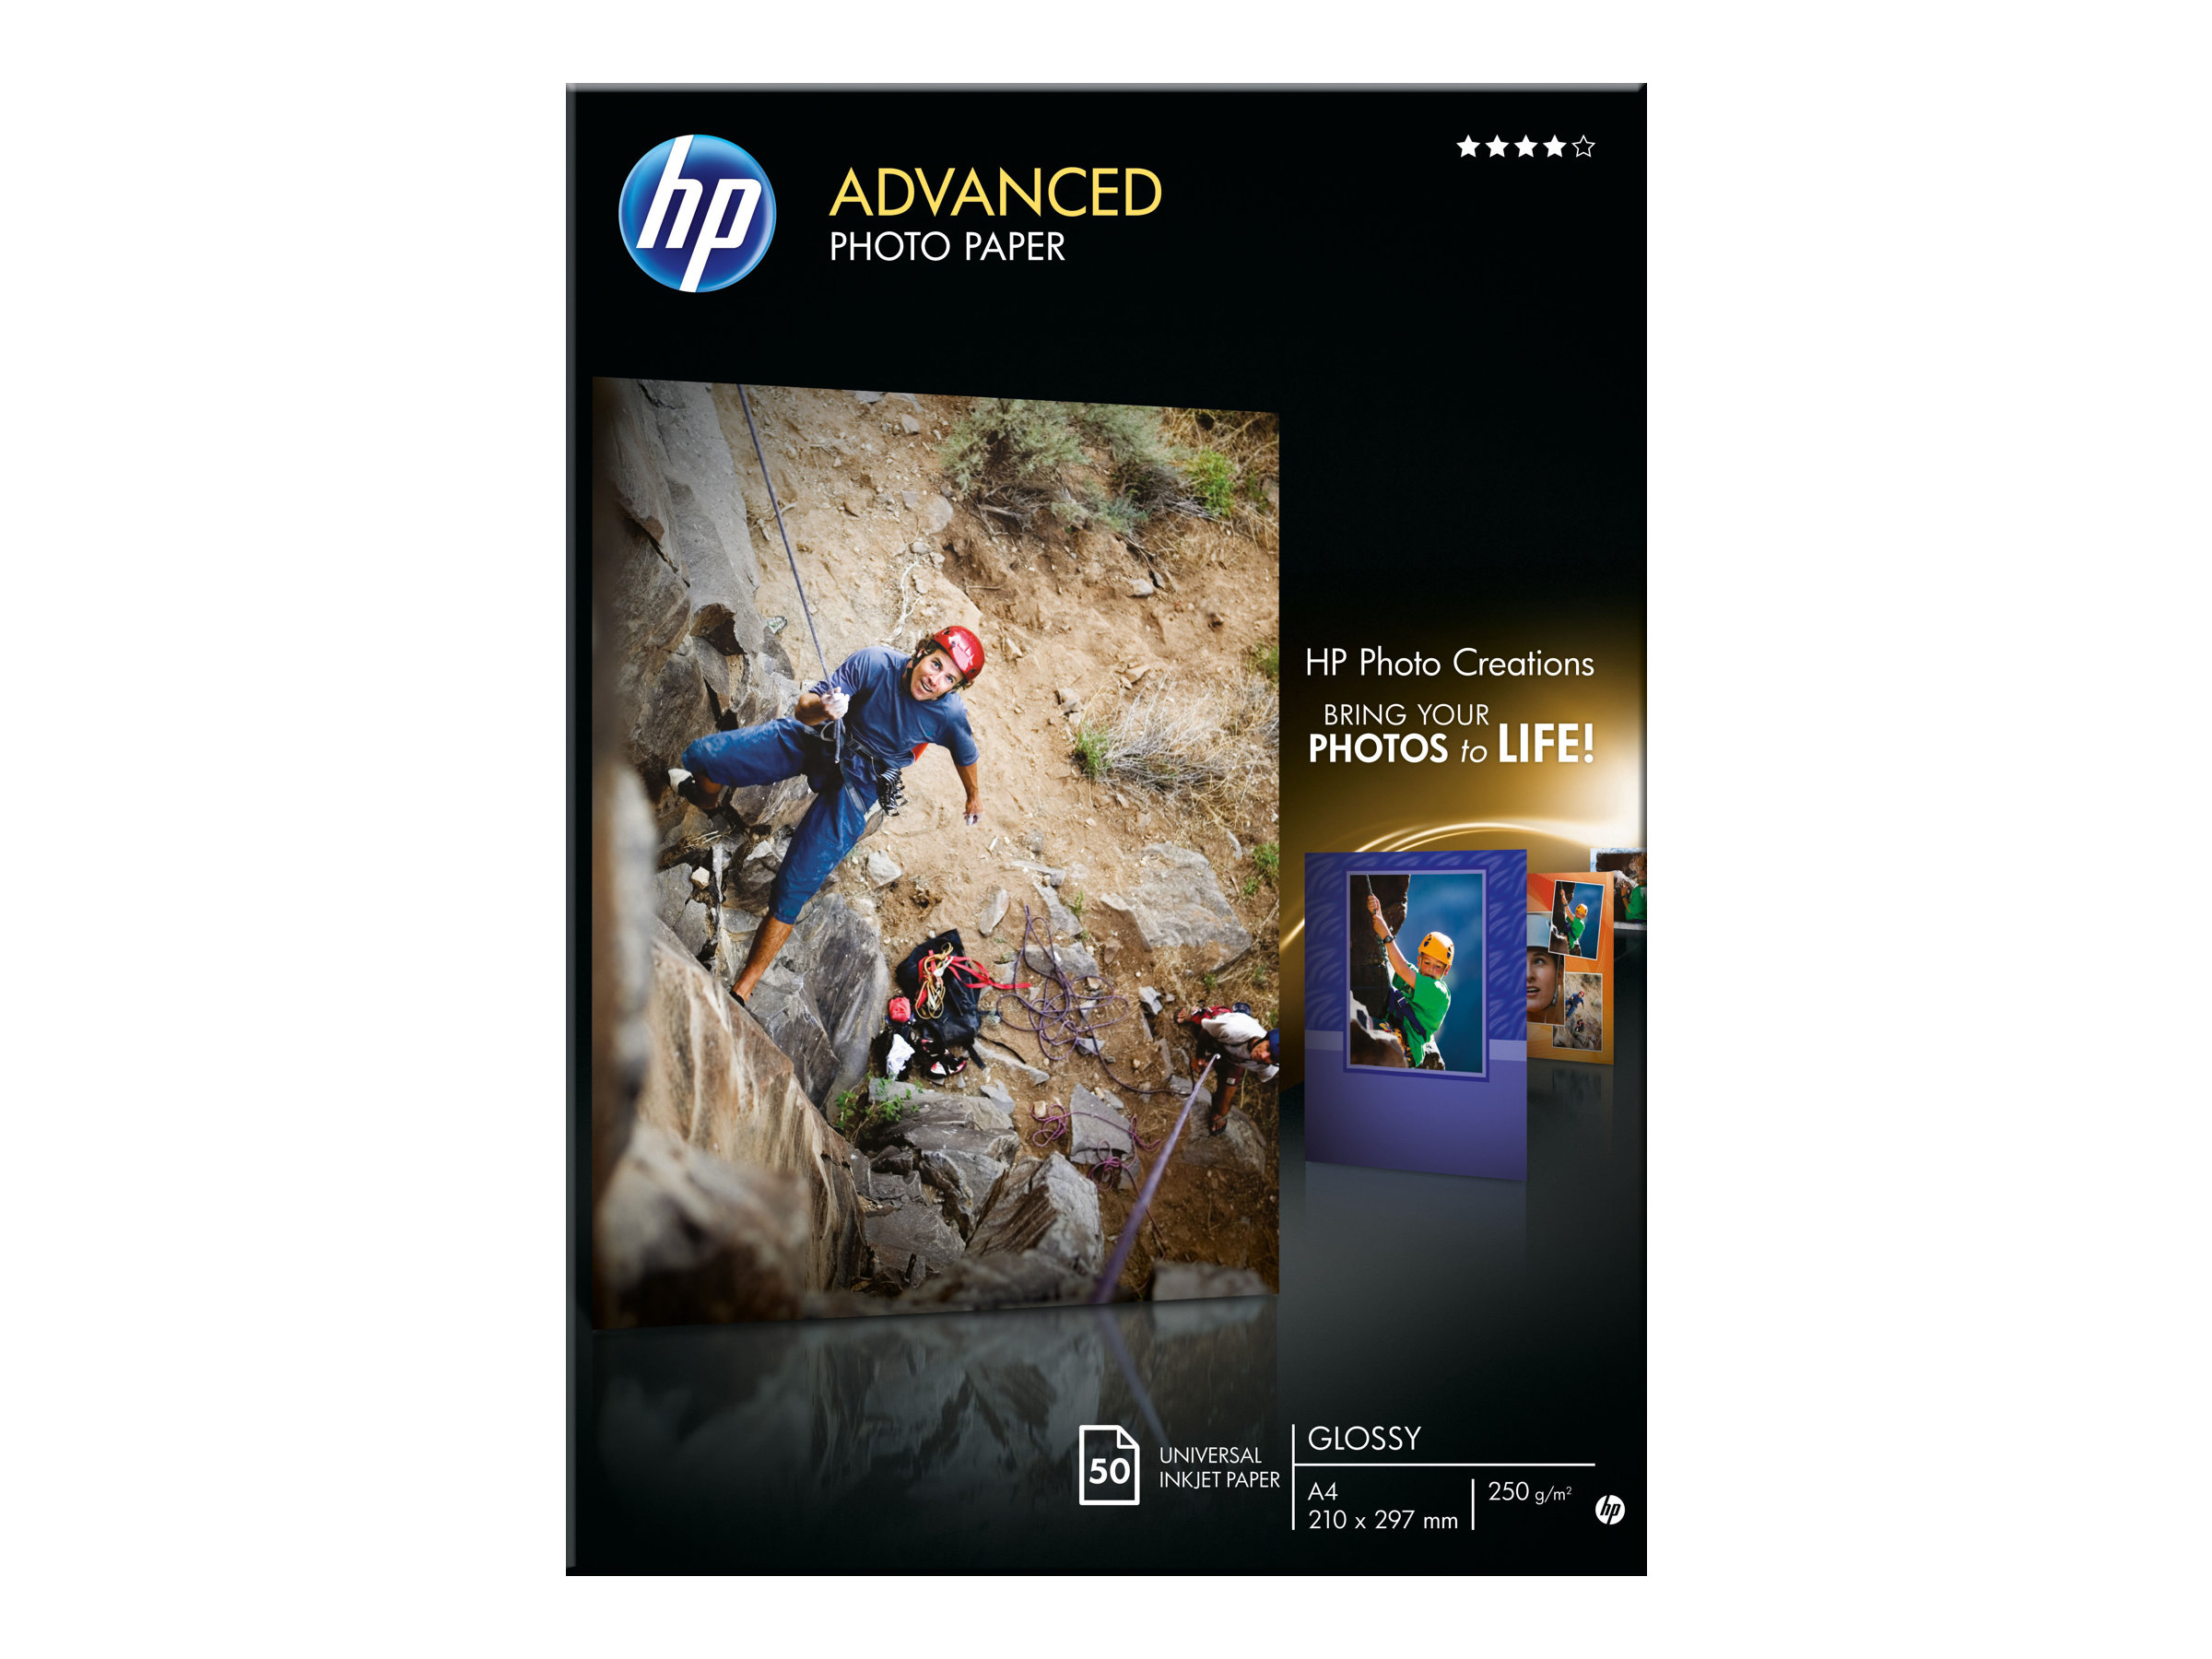 HP Advanced Glossy Photo Paper - Glänzend - A4 (210 x 297 mm)